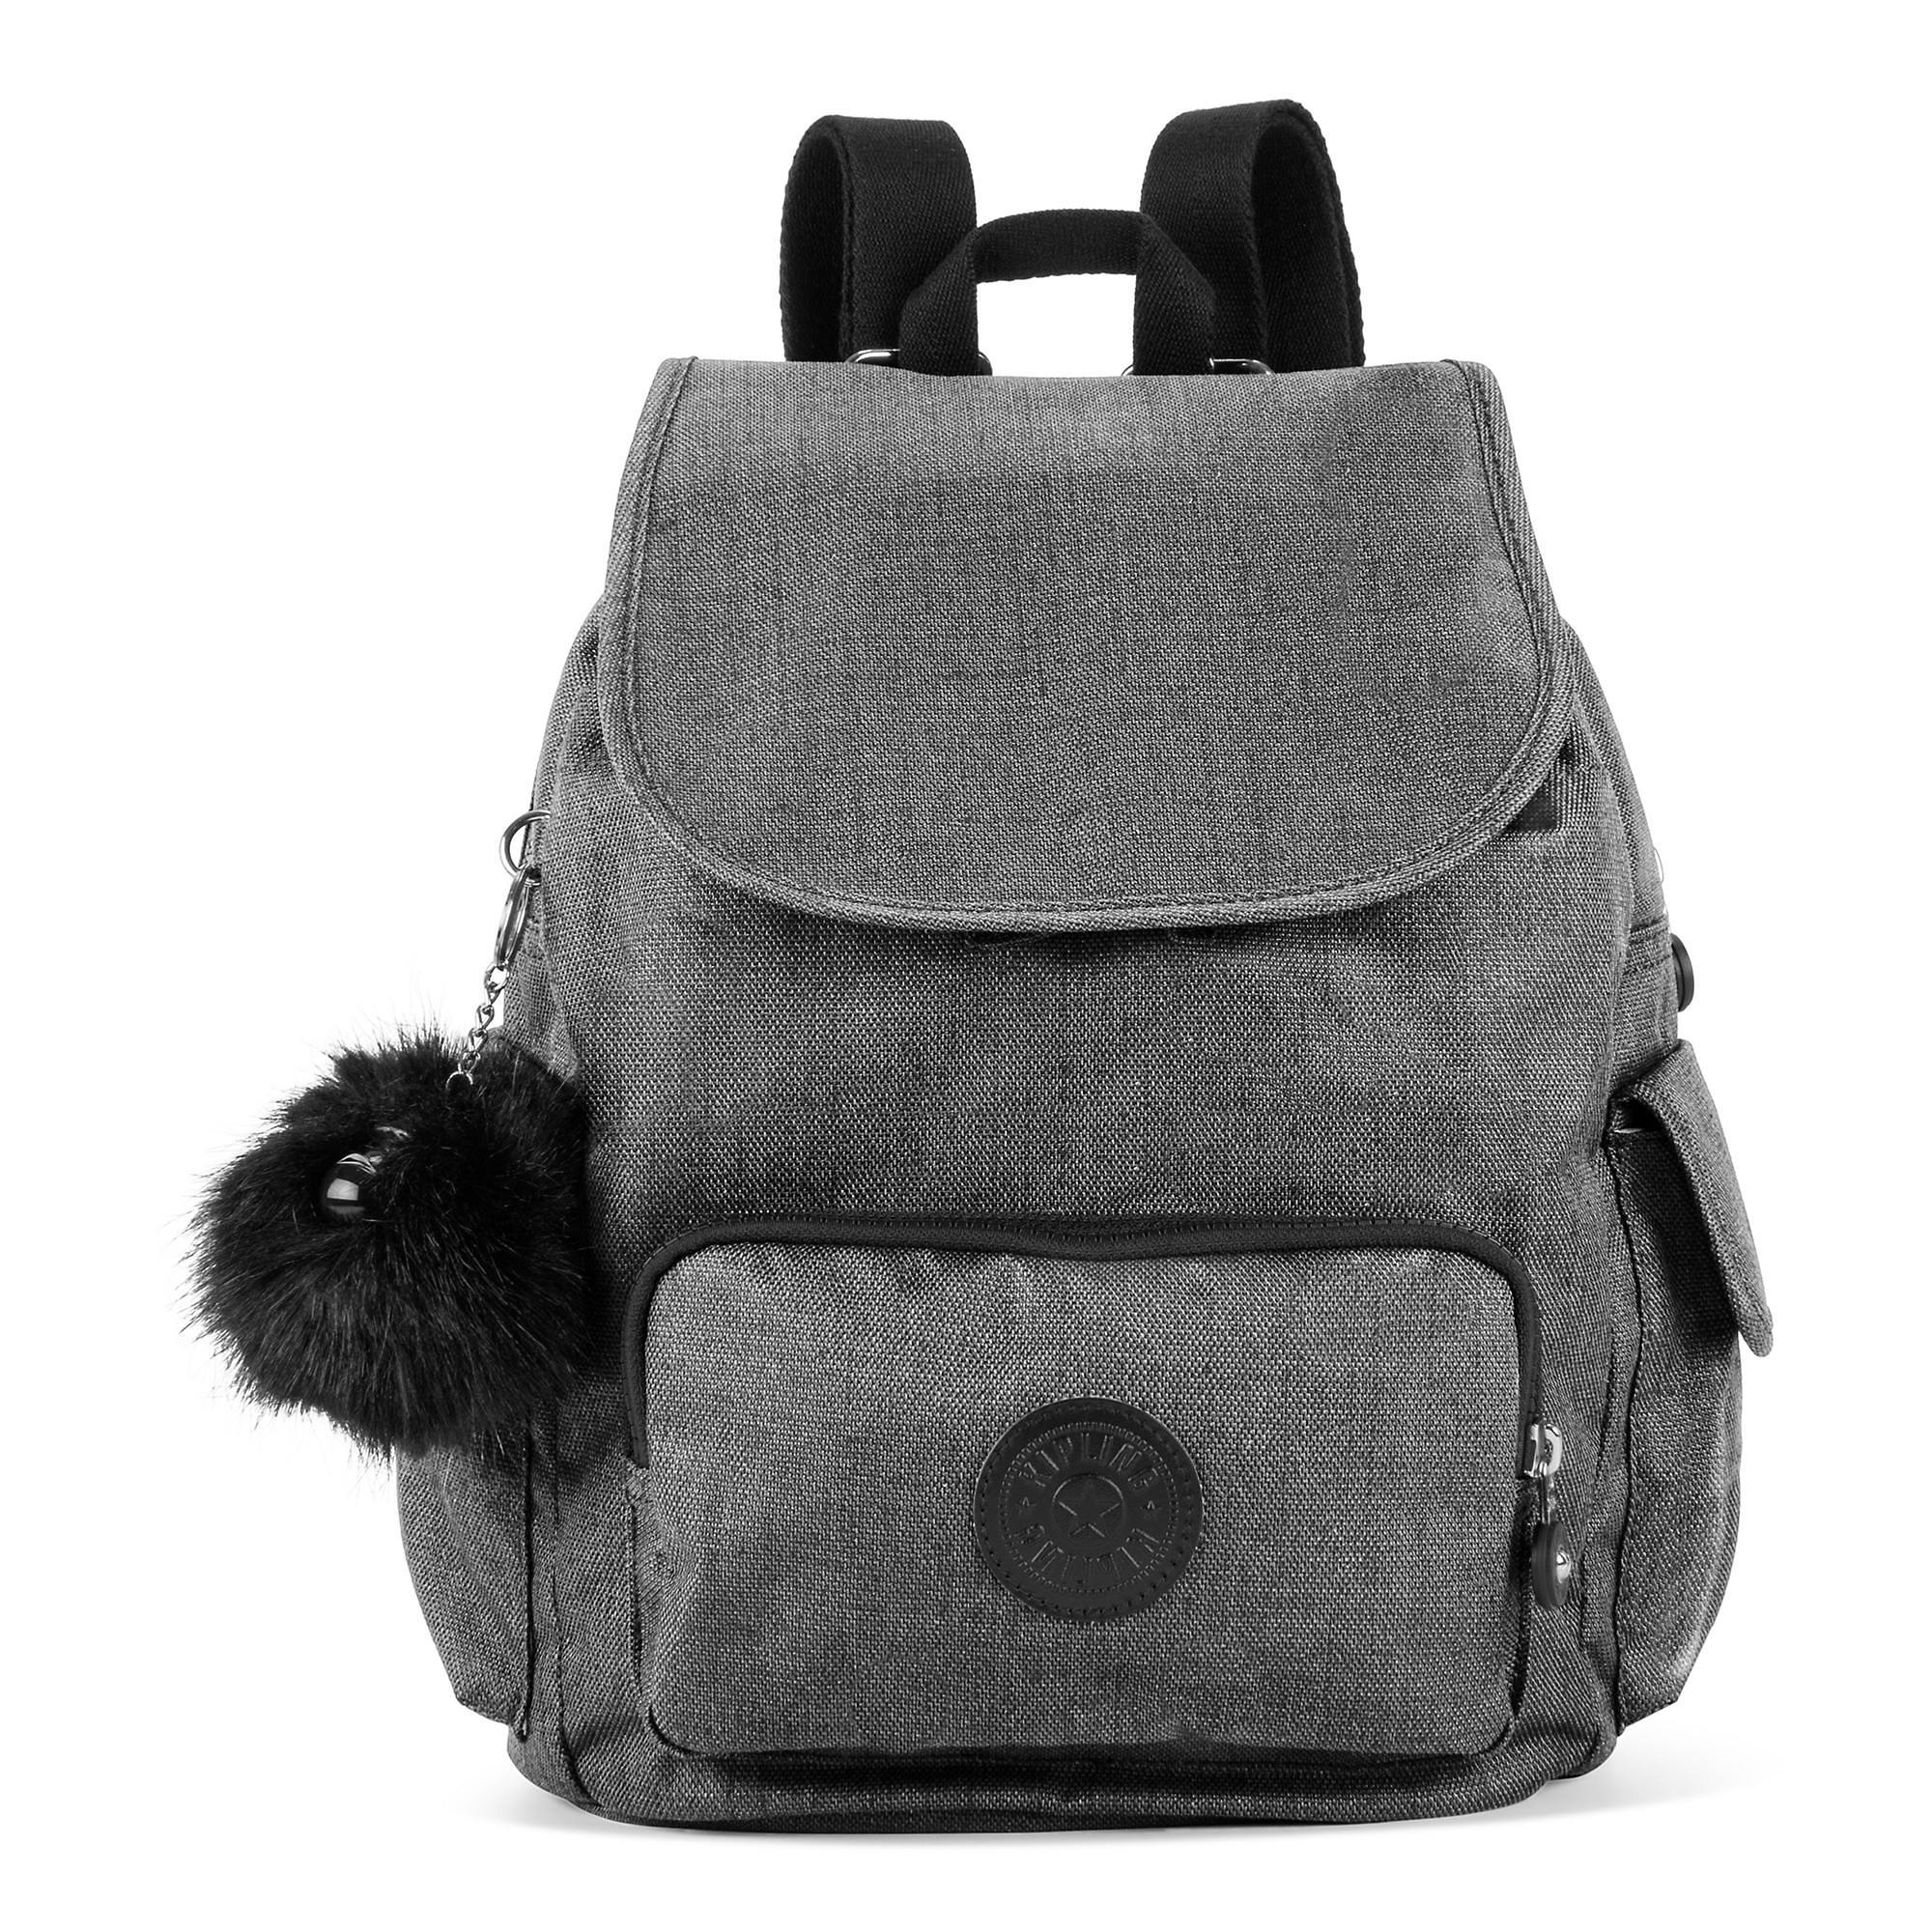 8de81f79e005 City Pack Small Backpack,Cotton Grey,large